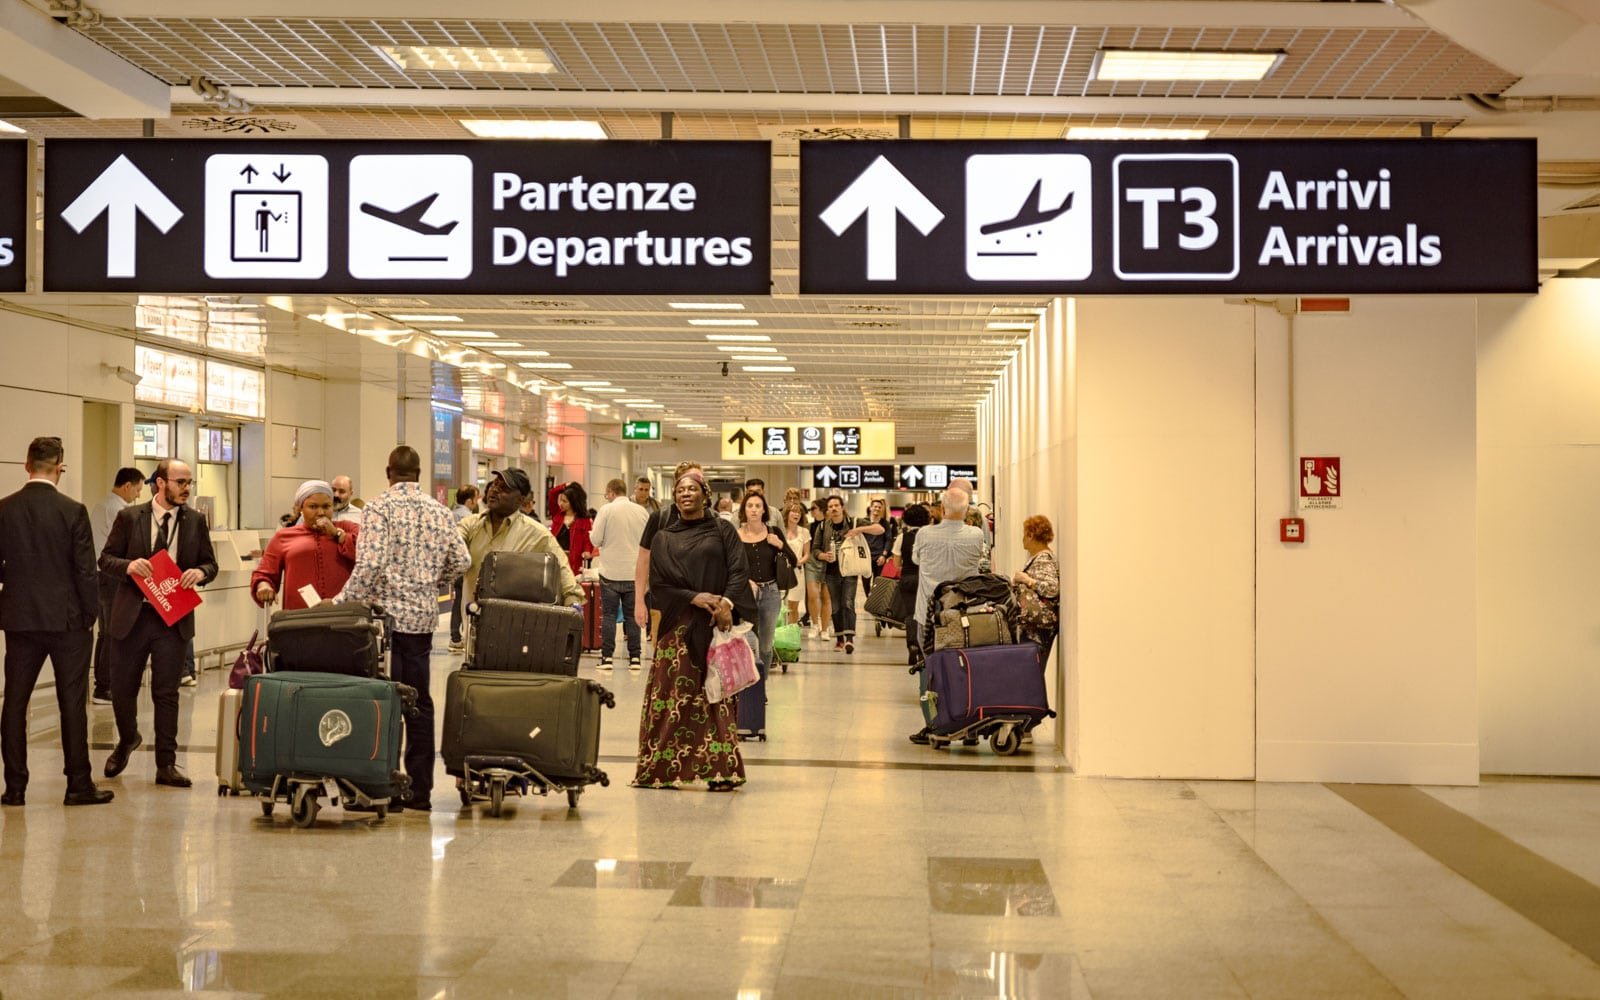 travellers walking with suitcases at fiumicino airport in rome italy